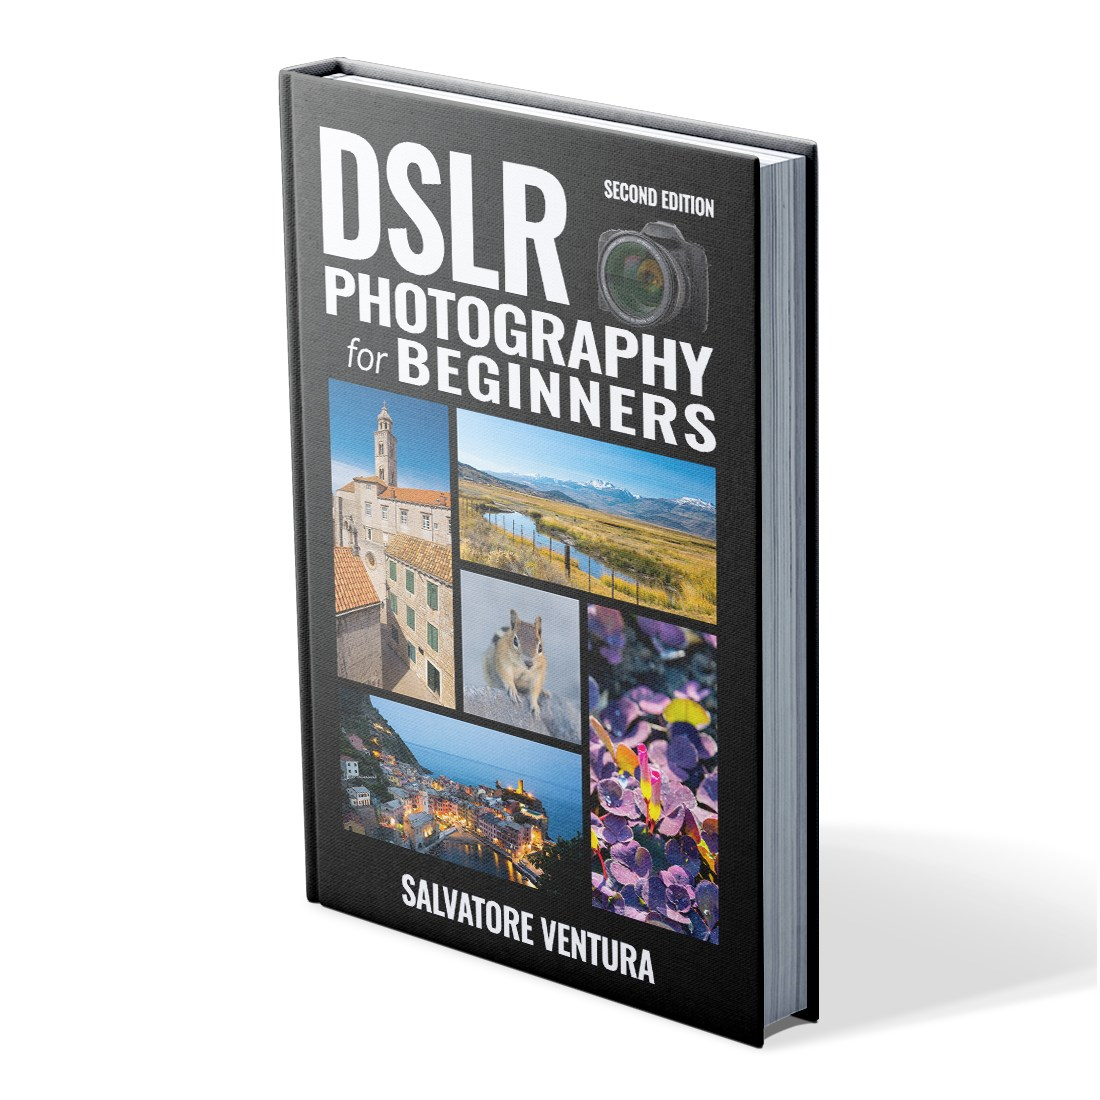 DSLR Photography for Beginners - Salvatore Ventura - Second Edition